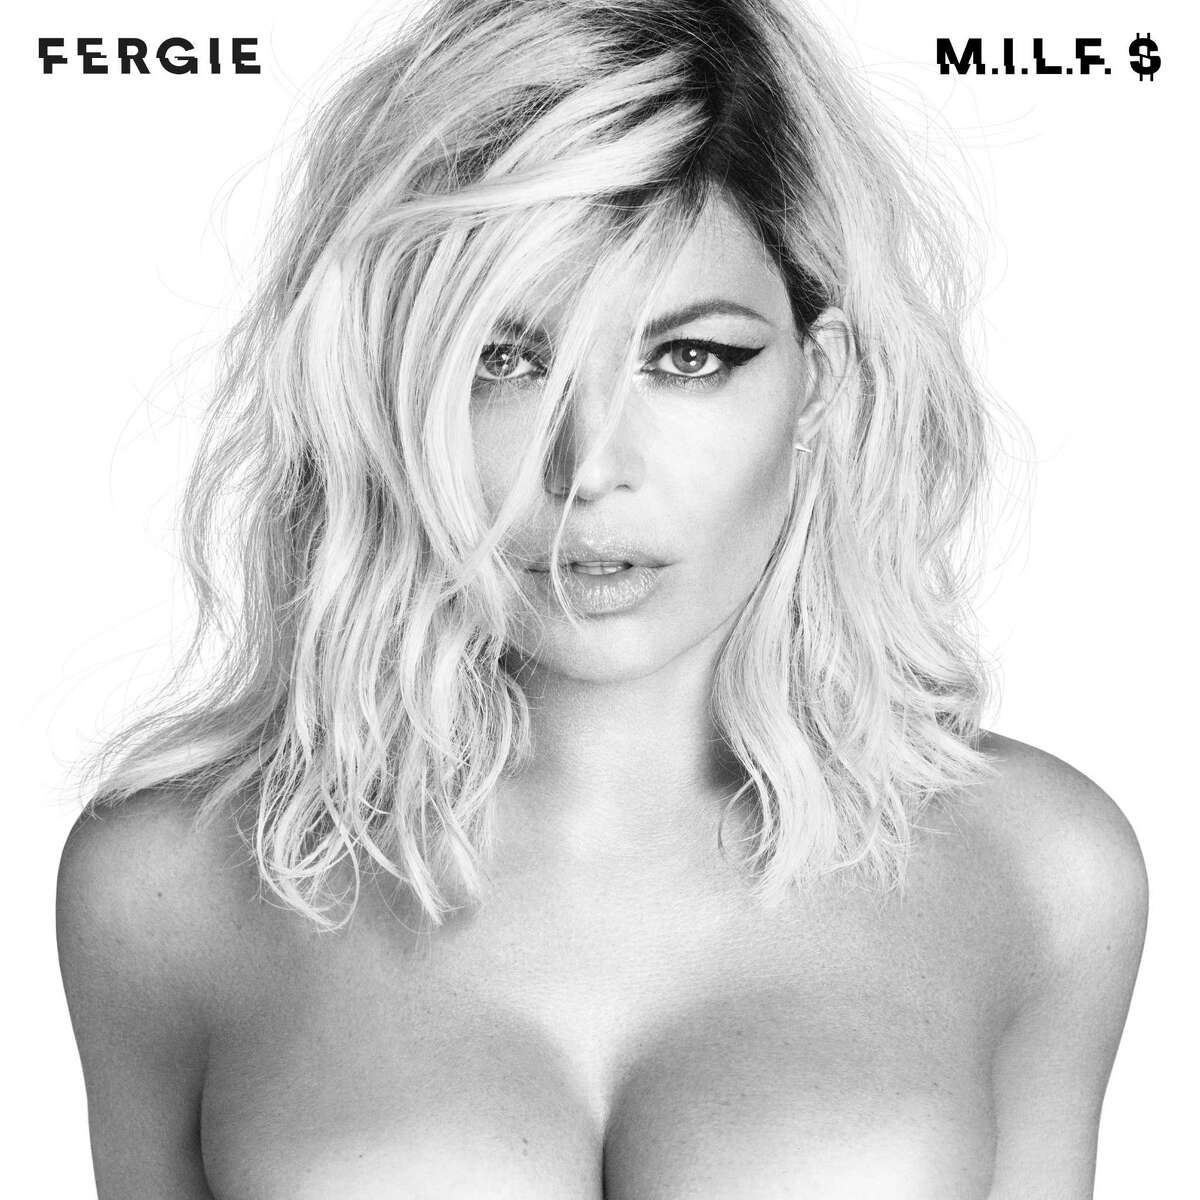 This image released by Interscope Records shows the cover image for Fergie's latest single,